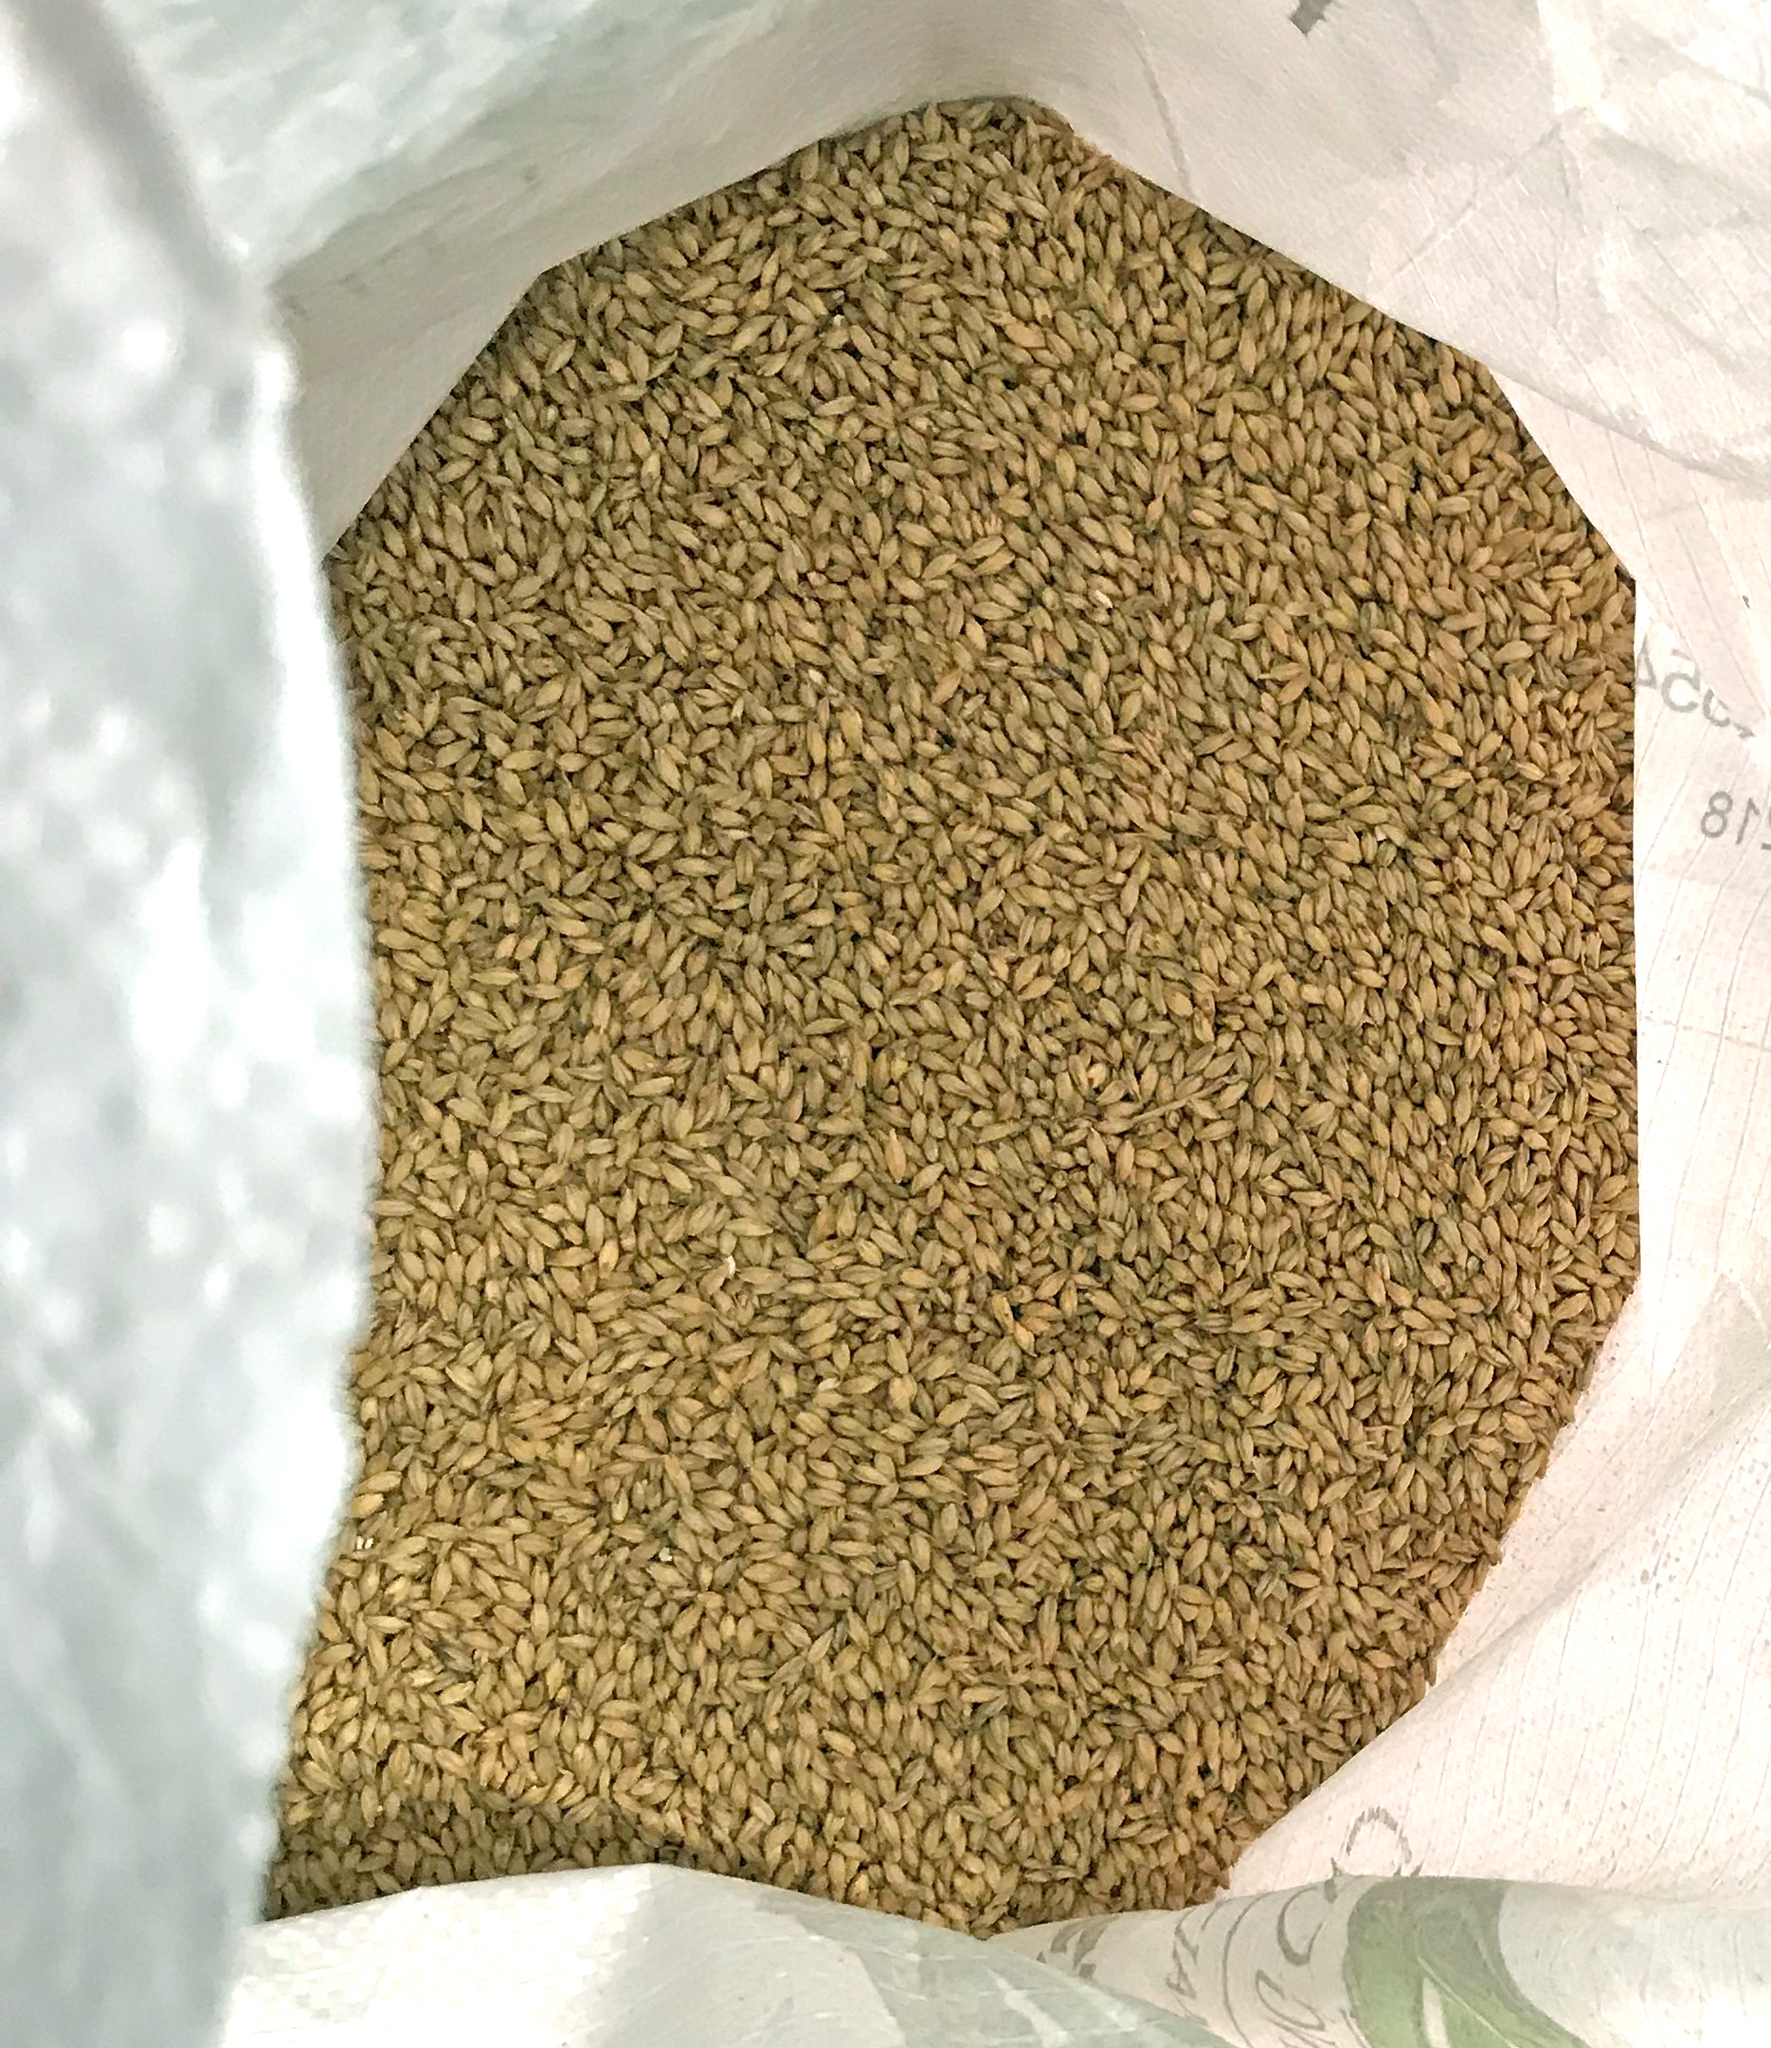 2-Row Malt - base malt found in most beers